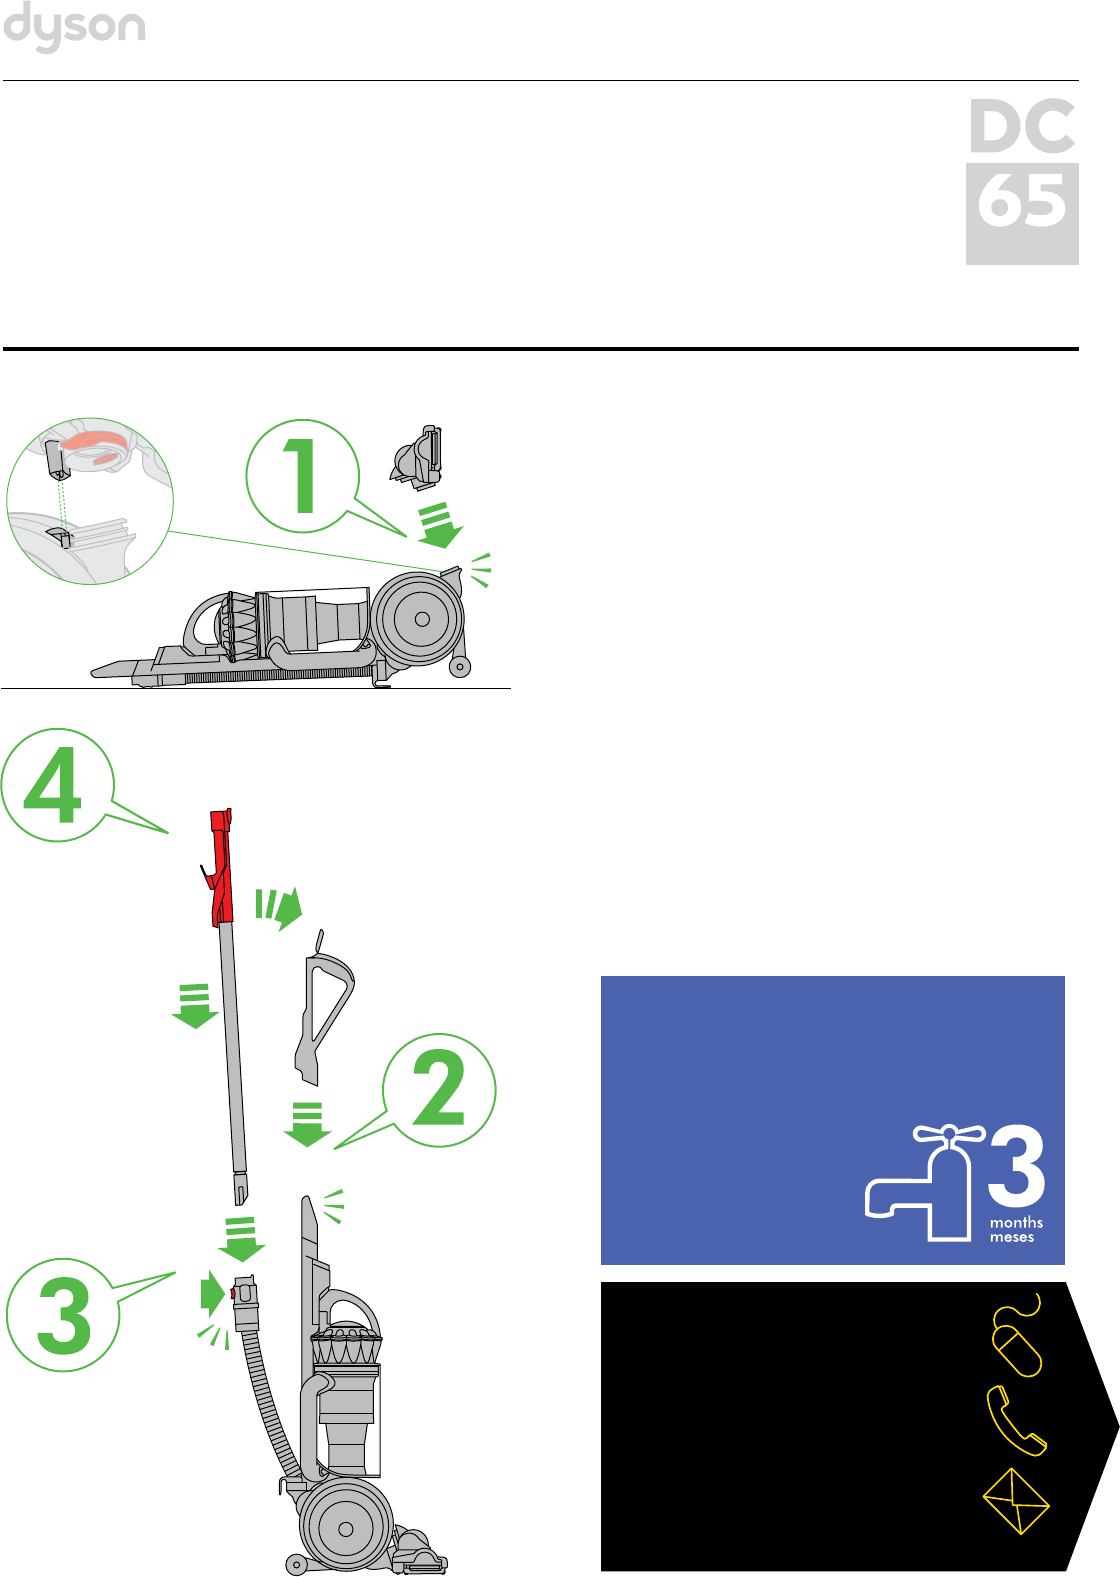 dyson vacuum cleaner dc65 user guide manualsonline com rh homeappliance manualsonline com dyson owner manual ab14 dyson owner manual ab14